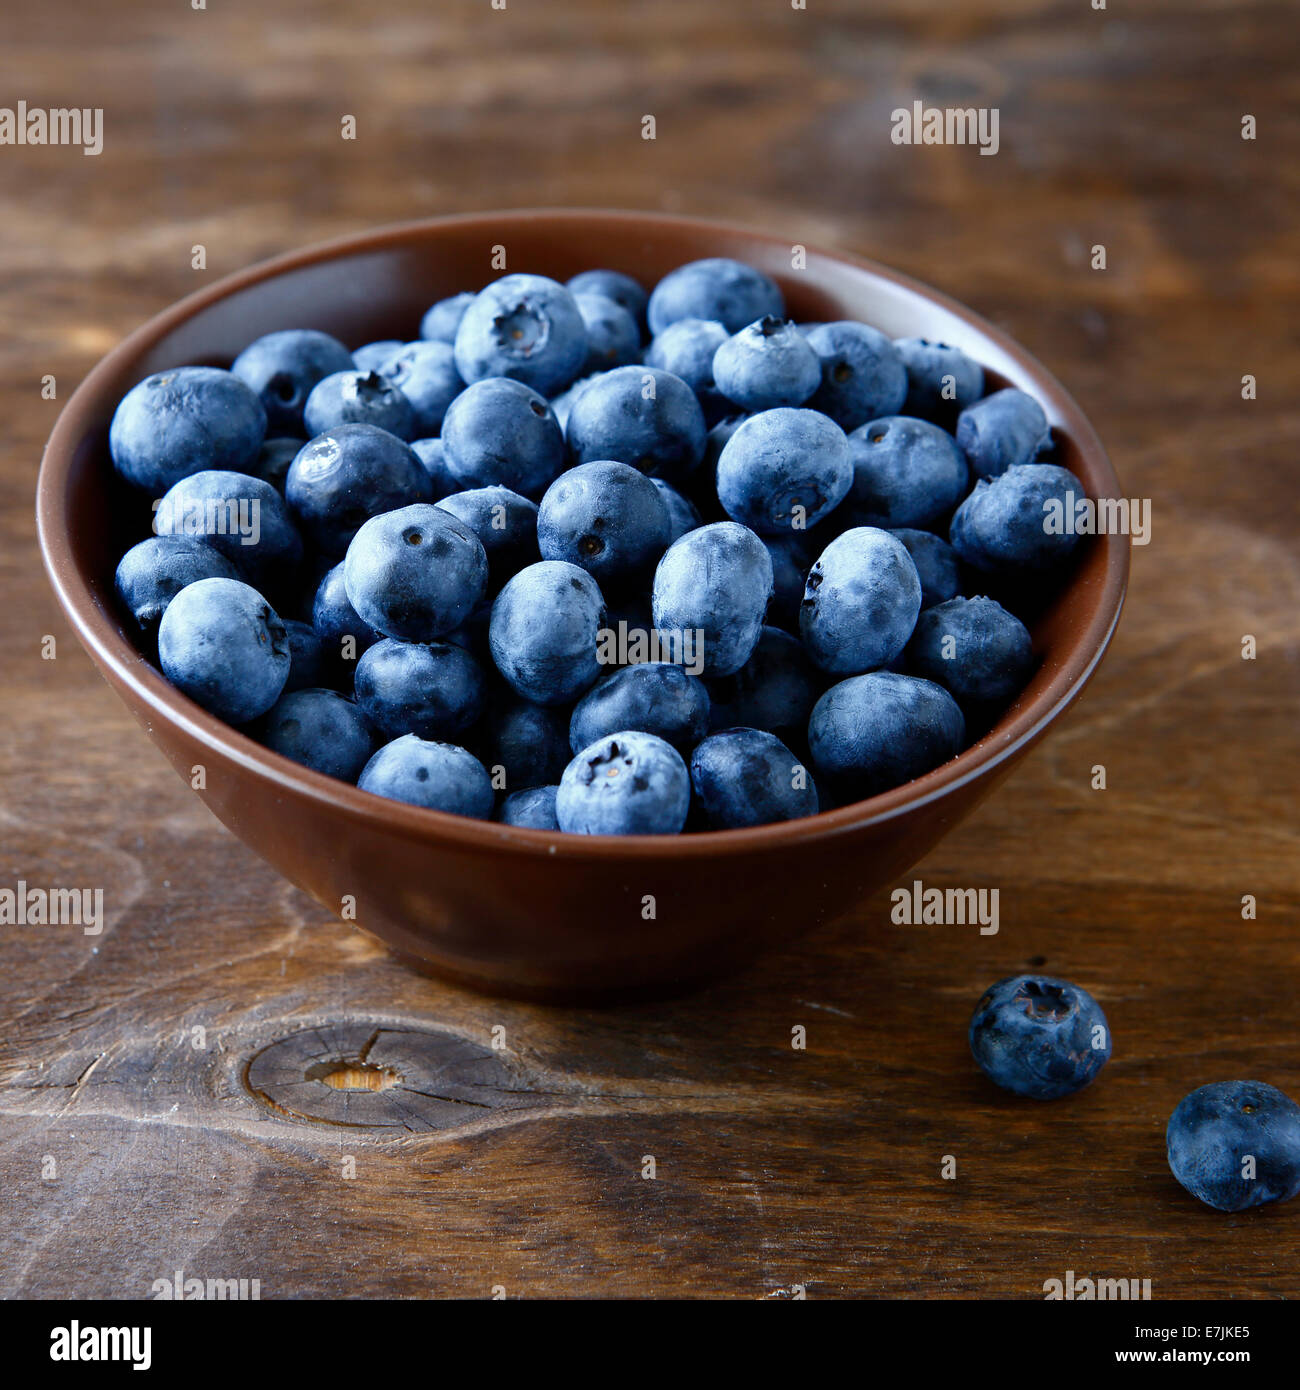 Fresh blueberries in a bowl of wooden boards, healthy food - Stock Image